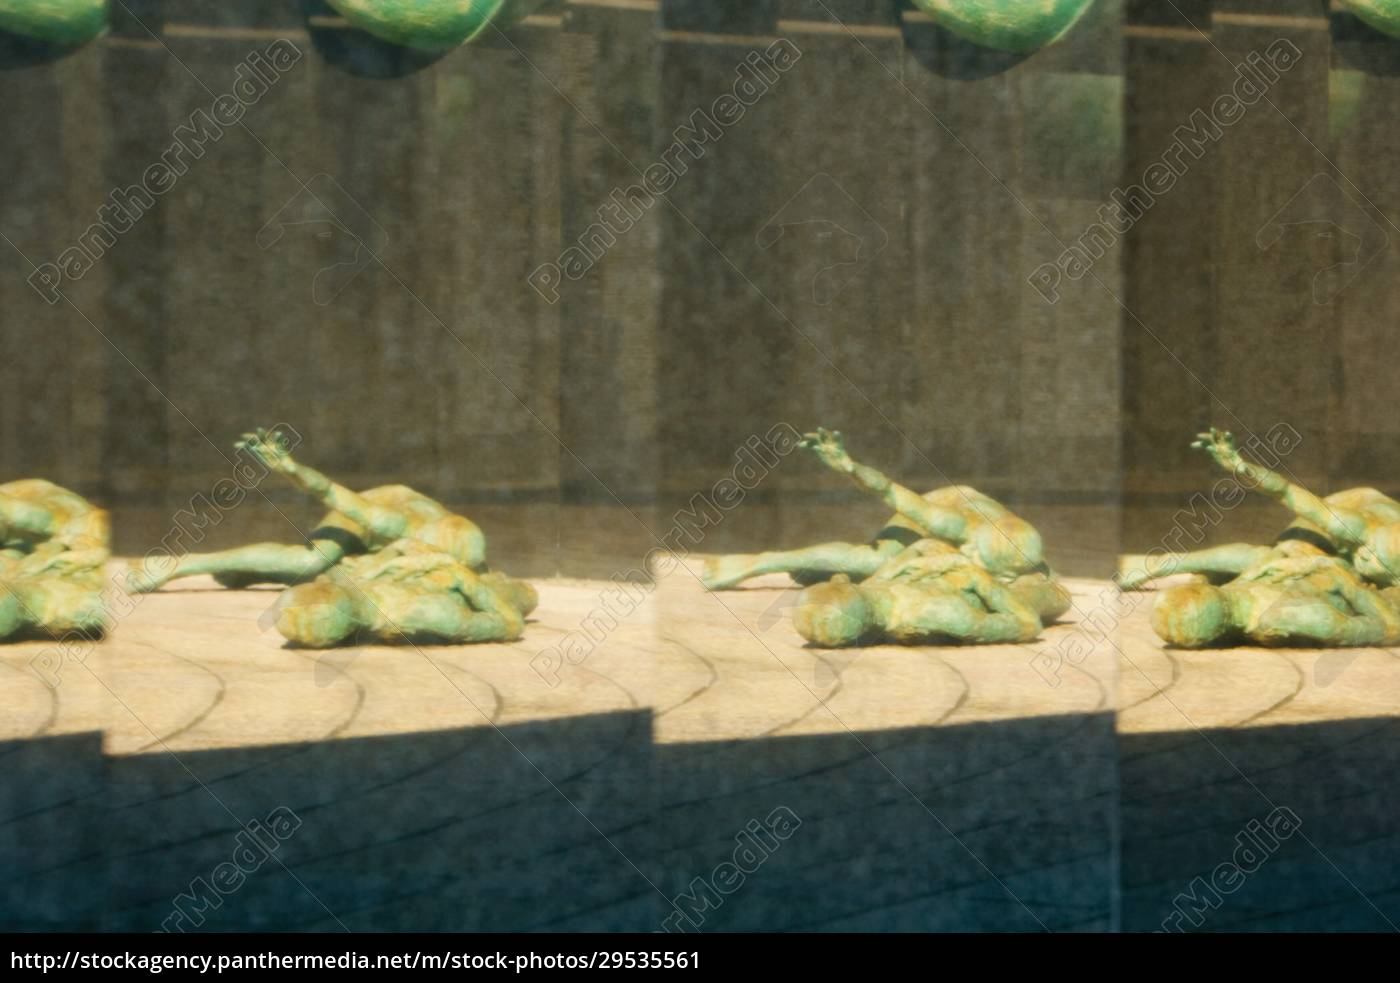 reflection, of, a, statue - 29535561